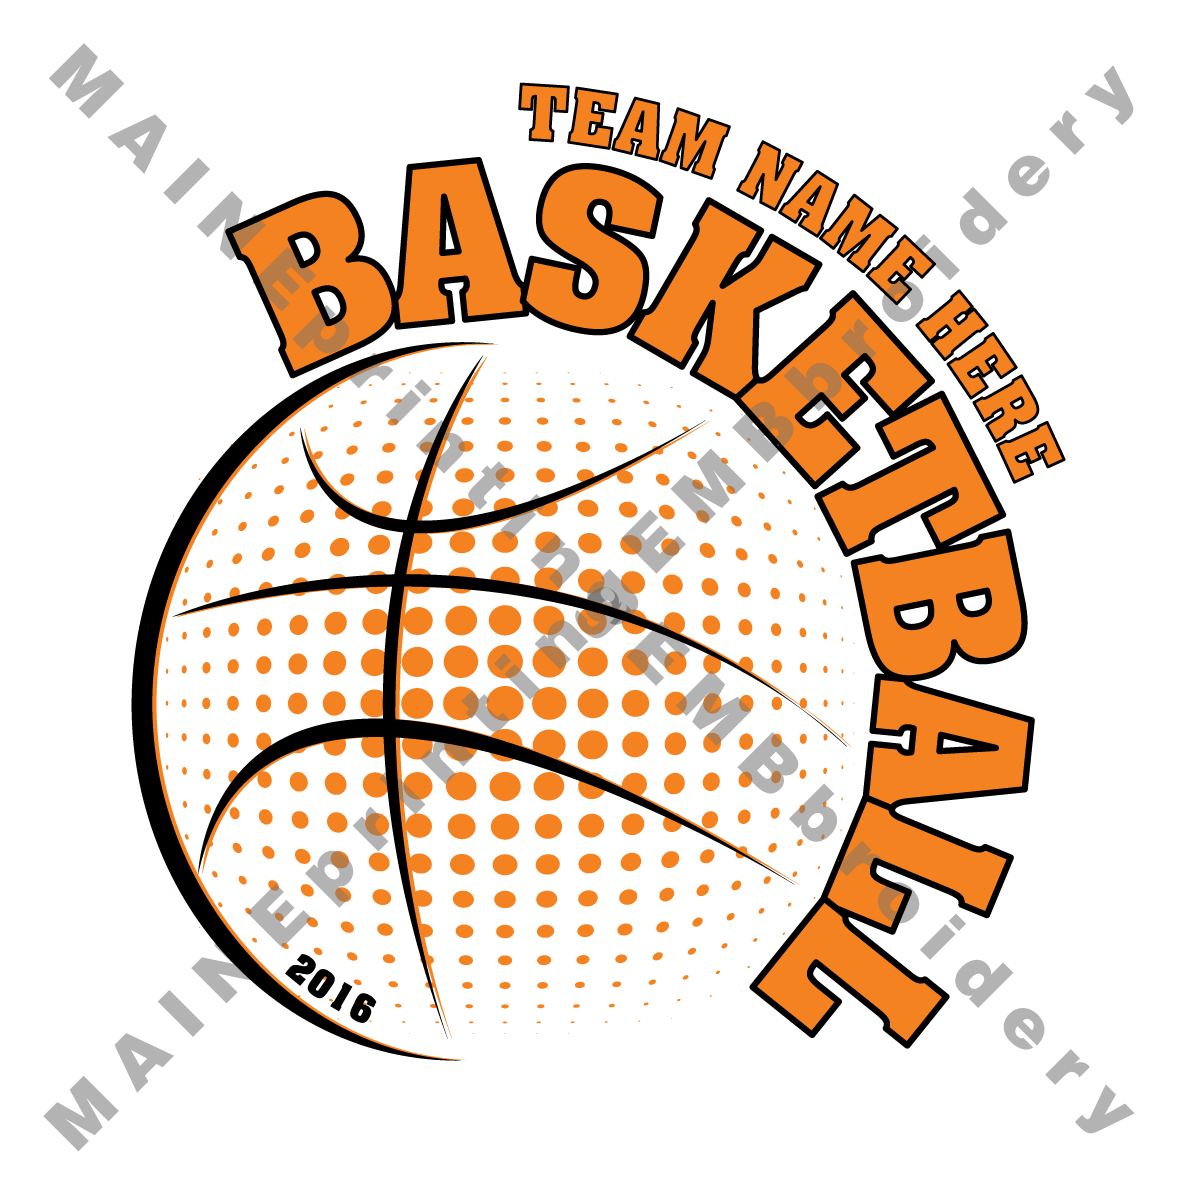 Basketball T Shirt Design Ideas basketball team t shirt bsk 1003 Basketball Shirt Design